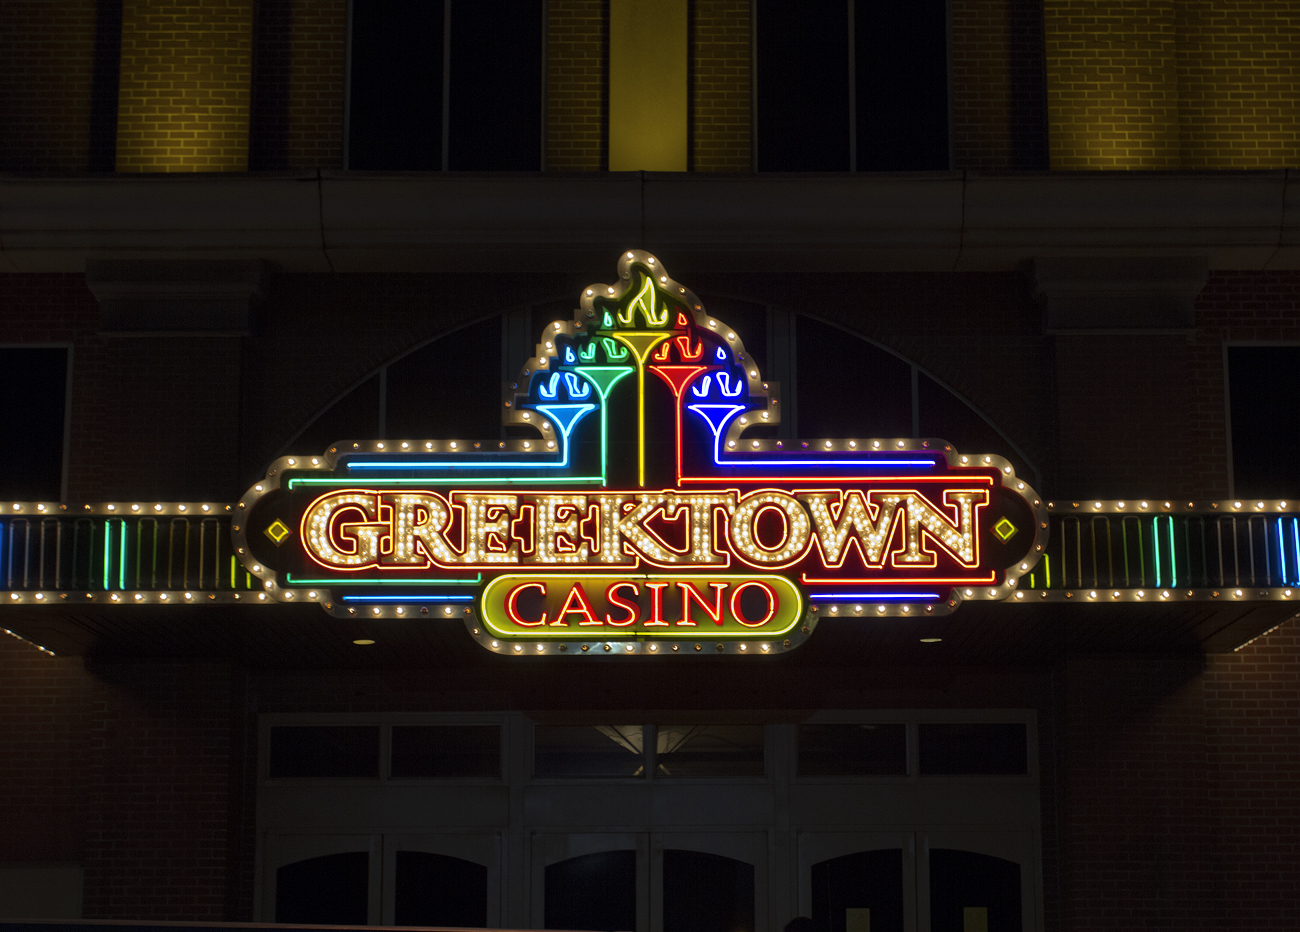 The greektown casino casino in new york state